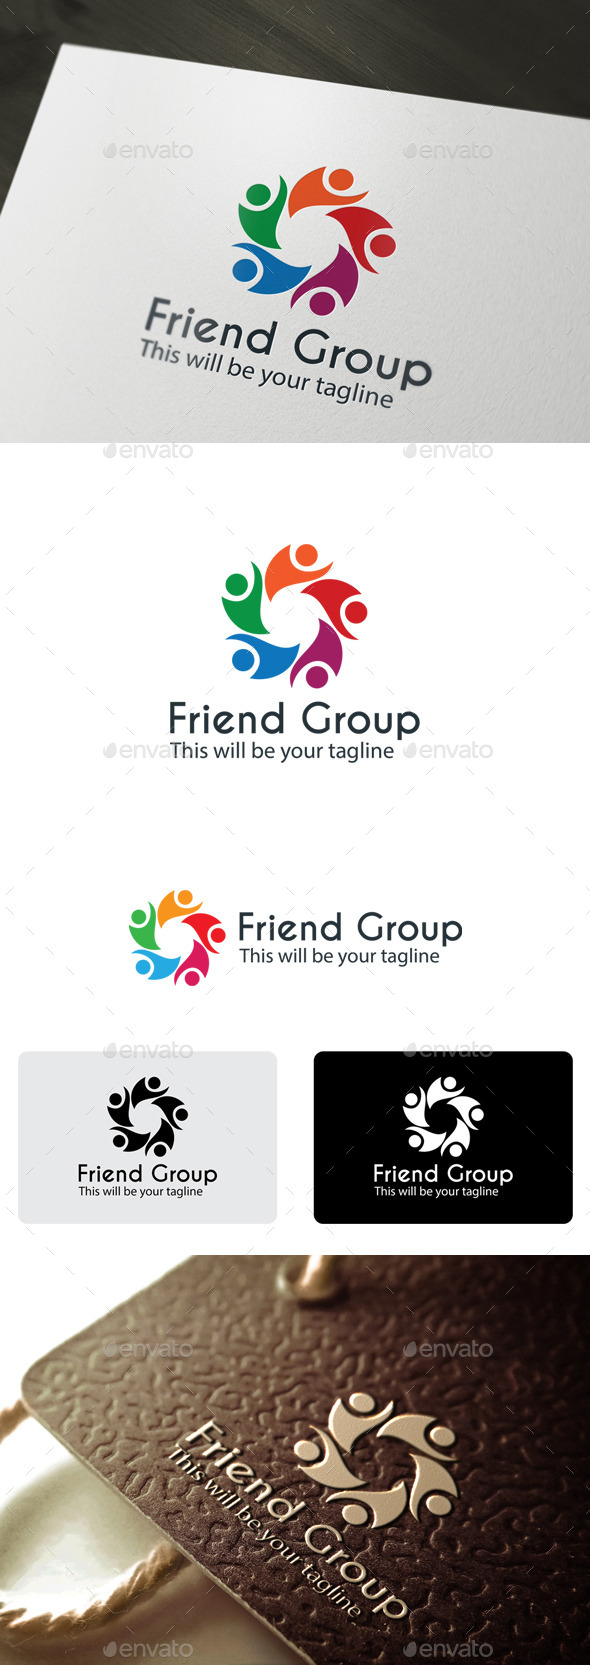 GraphicRiver Friend Group 9939794